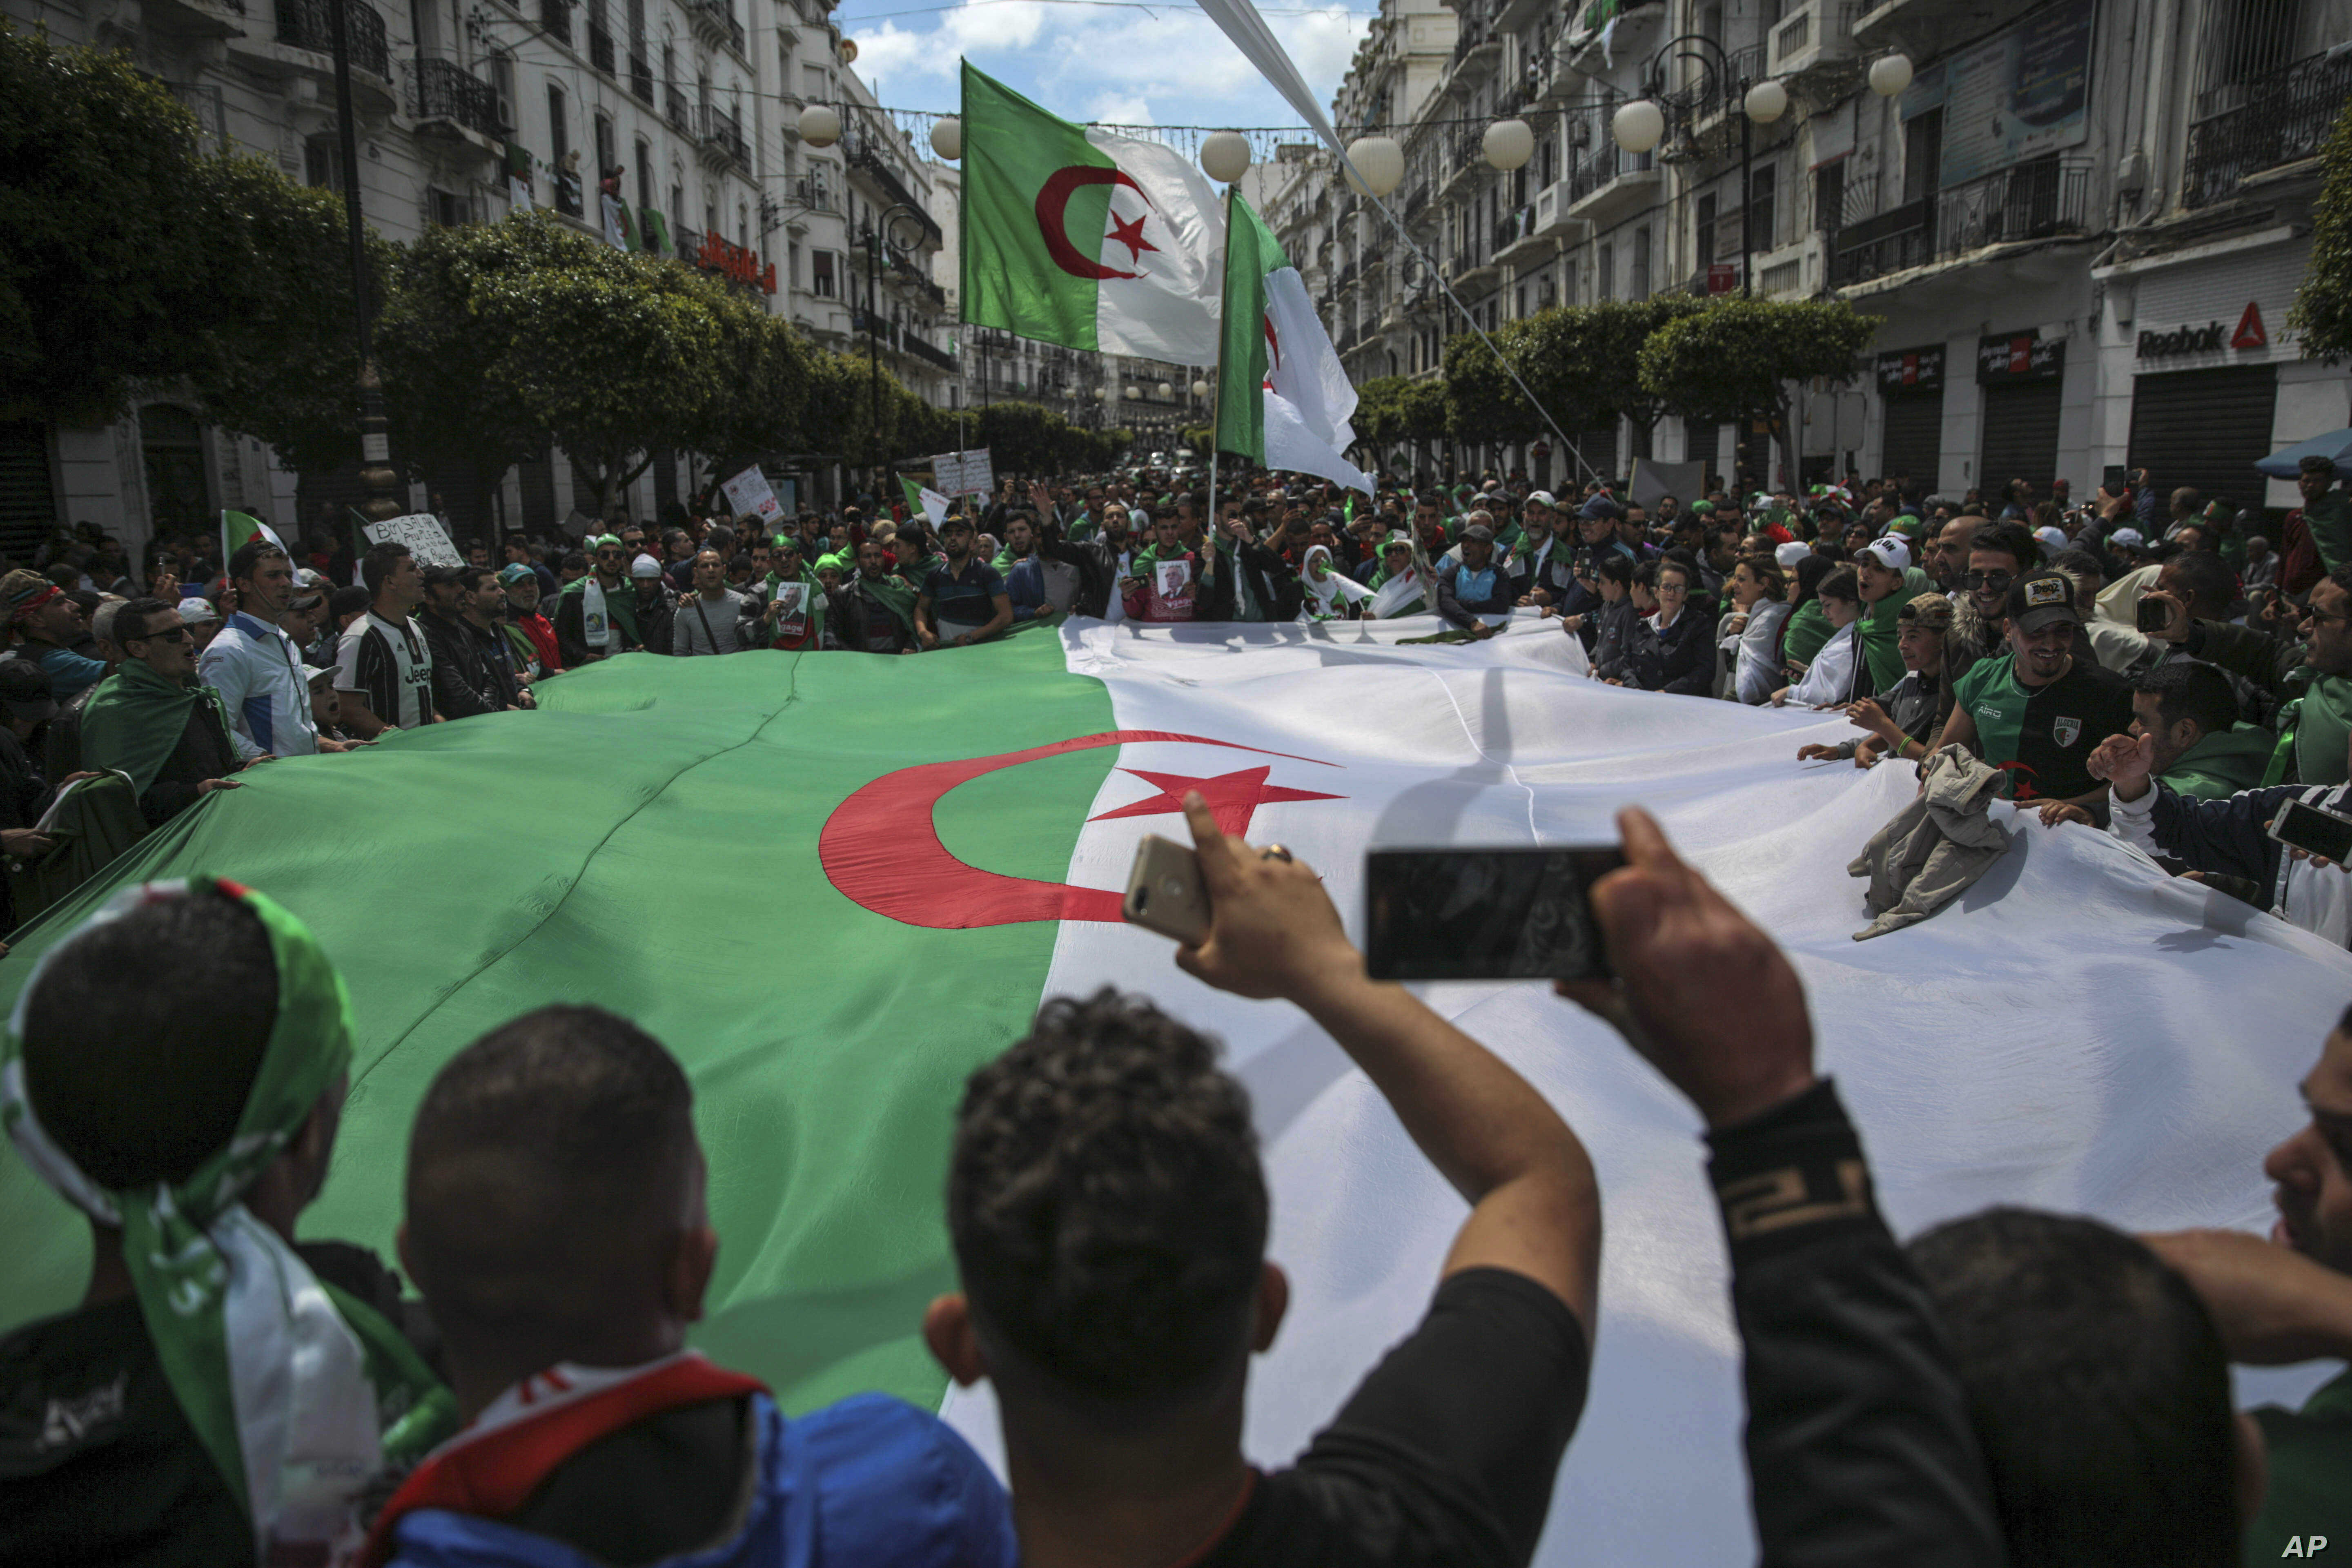 FILE - Protestors carry a large flag and chant slogans during a demonstration against the country's leadership, in Algiers, April 12, 2019.